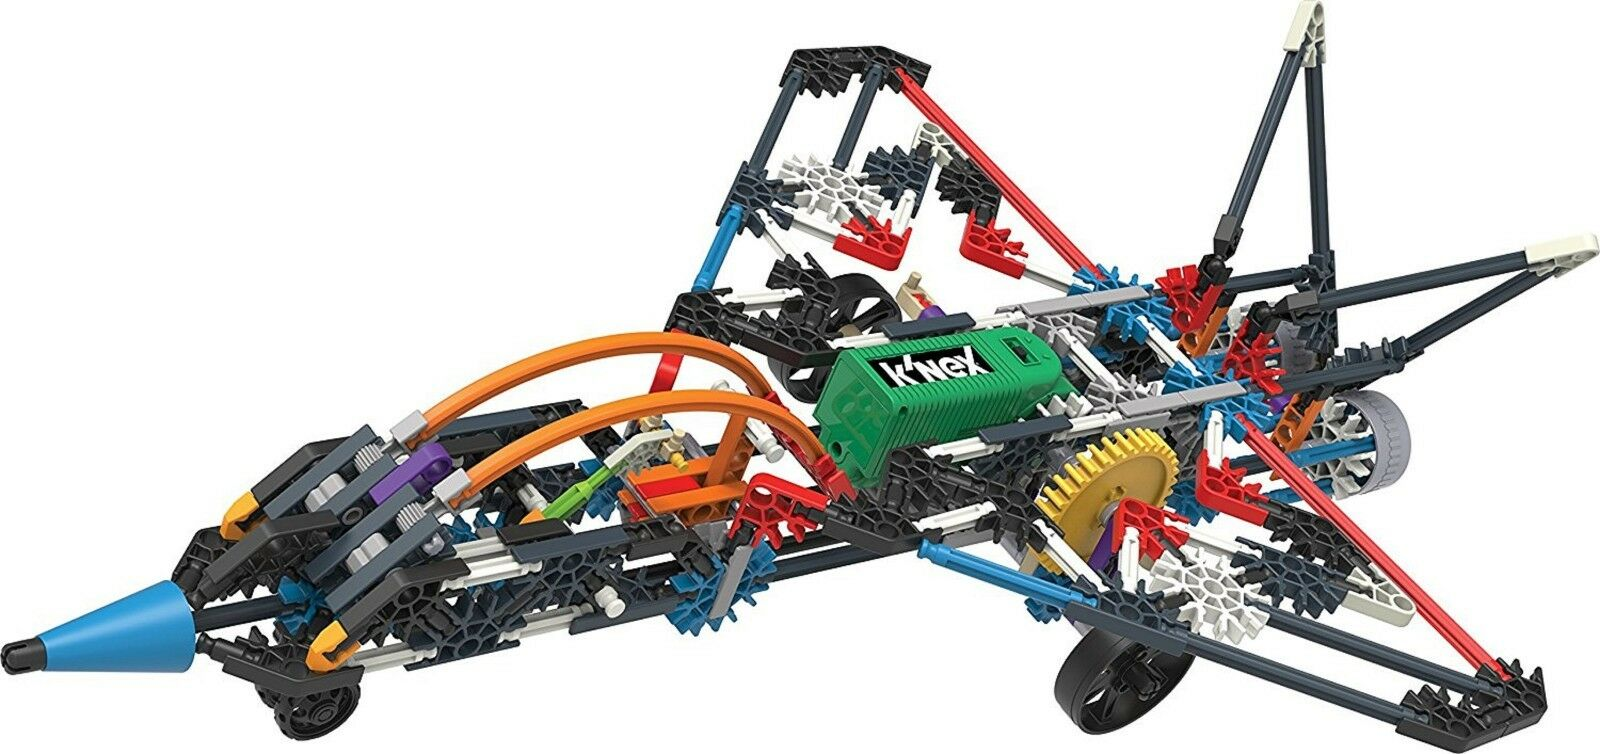 KNEX Turbo Jet Engineering Building Set Ages 7+ Girls Boys Educational Toy Play